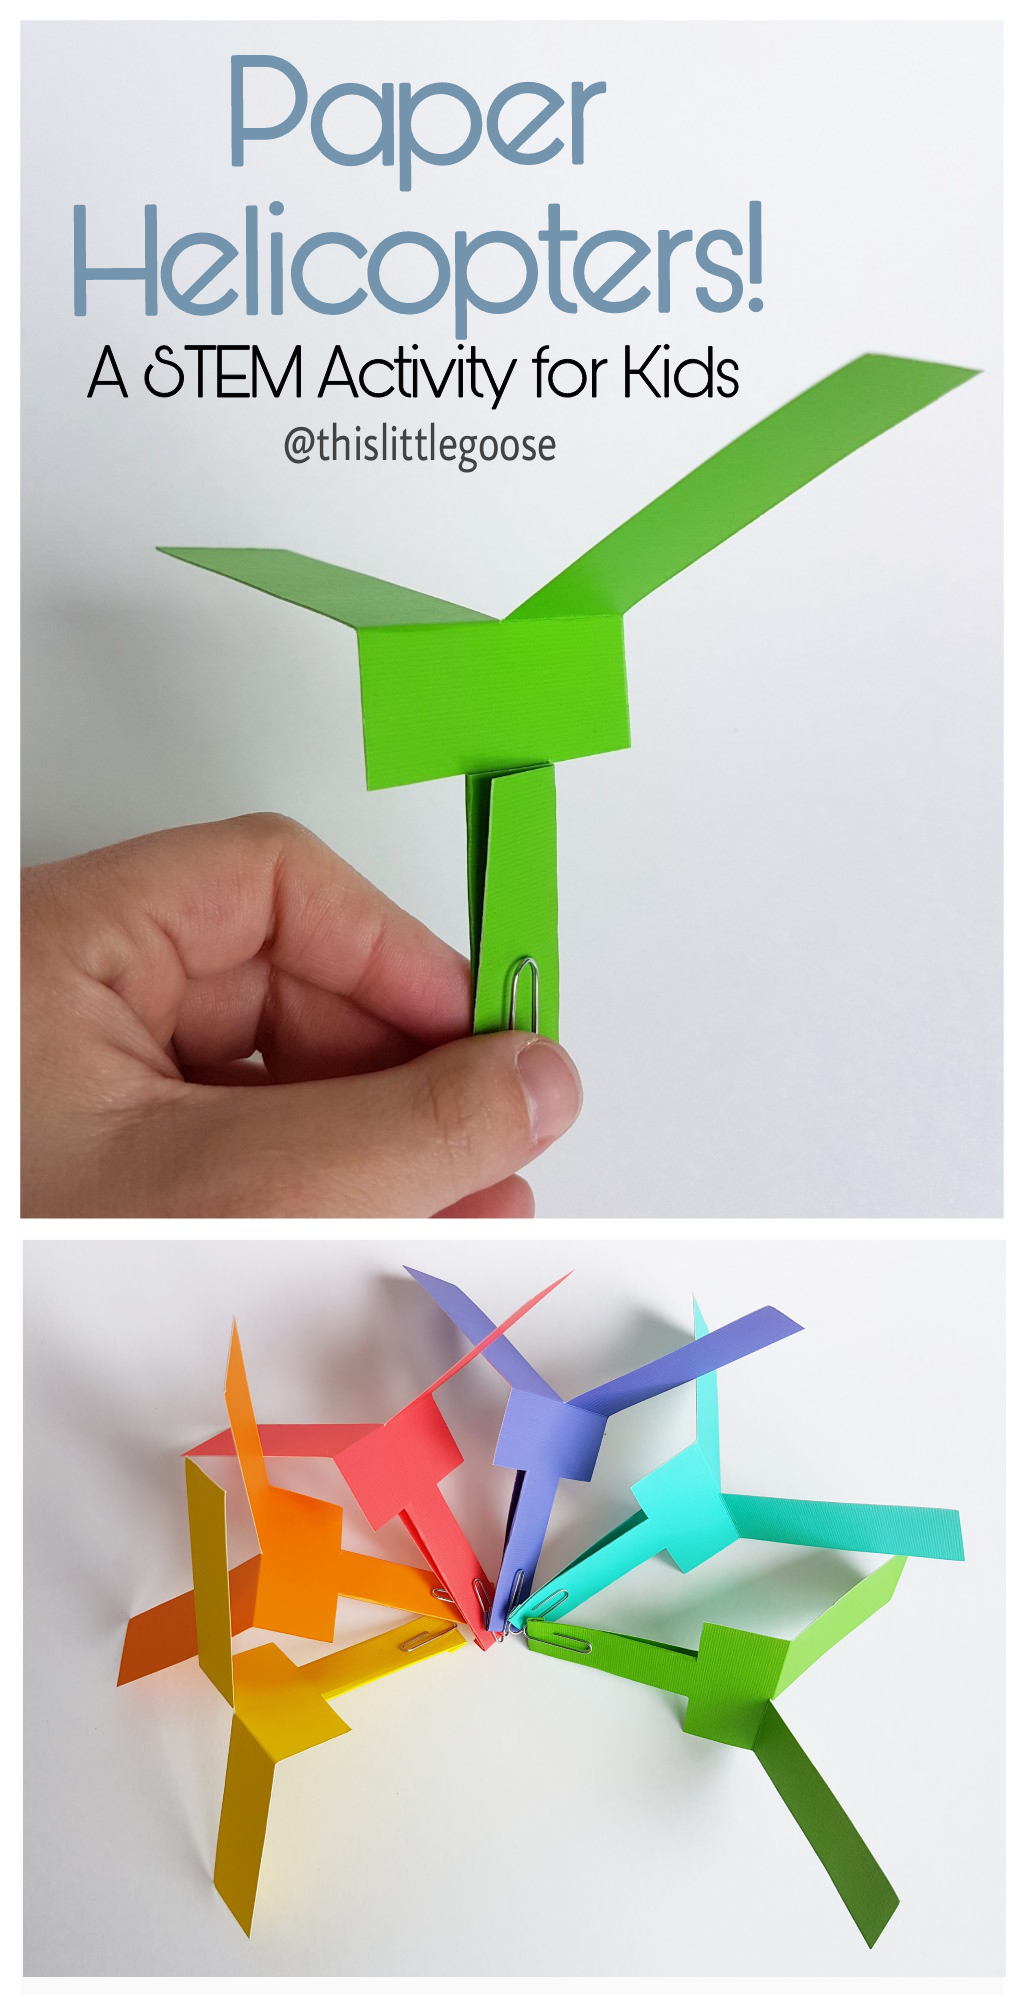 How to Make a Paper Helicopter - Easy Origami Helicopter | Type 1 ... | 1995x1024